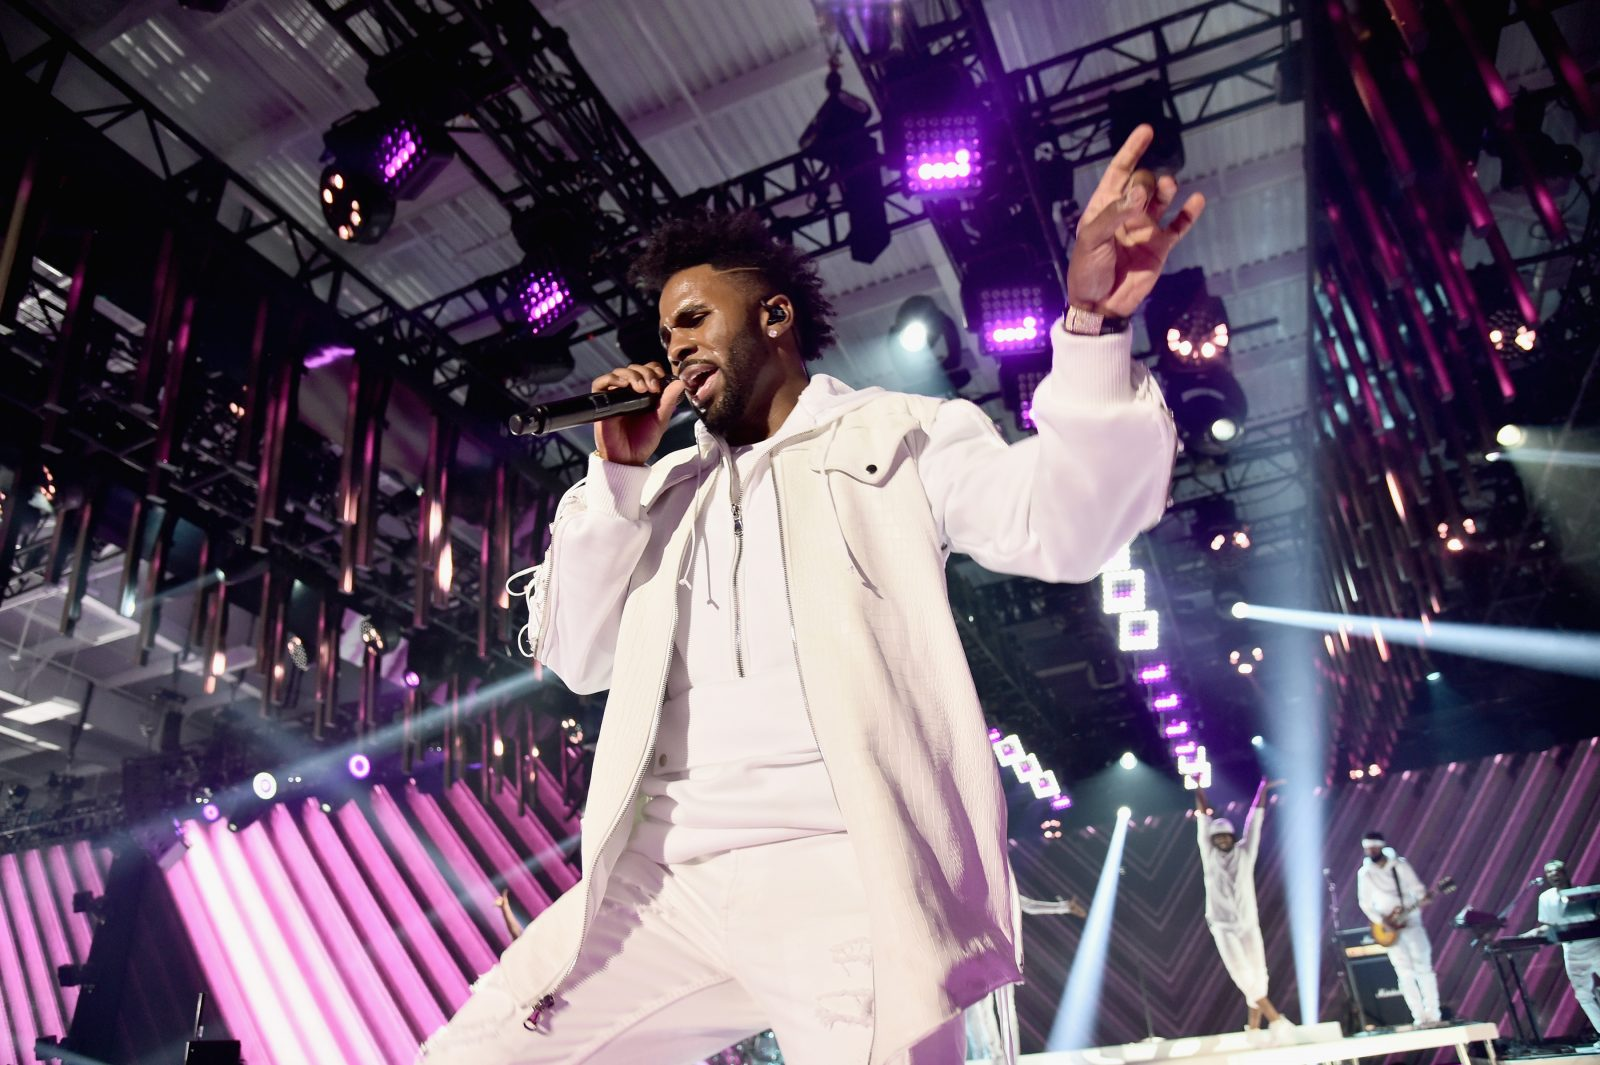 Jason Derulo will perform at the Erie County Fair. (Getty Images)